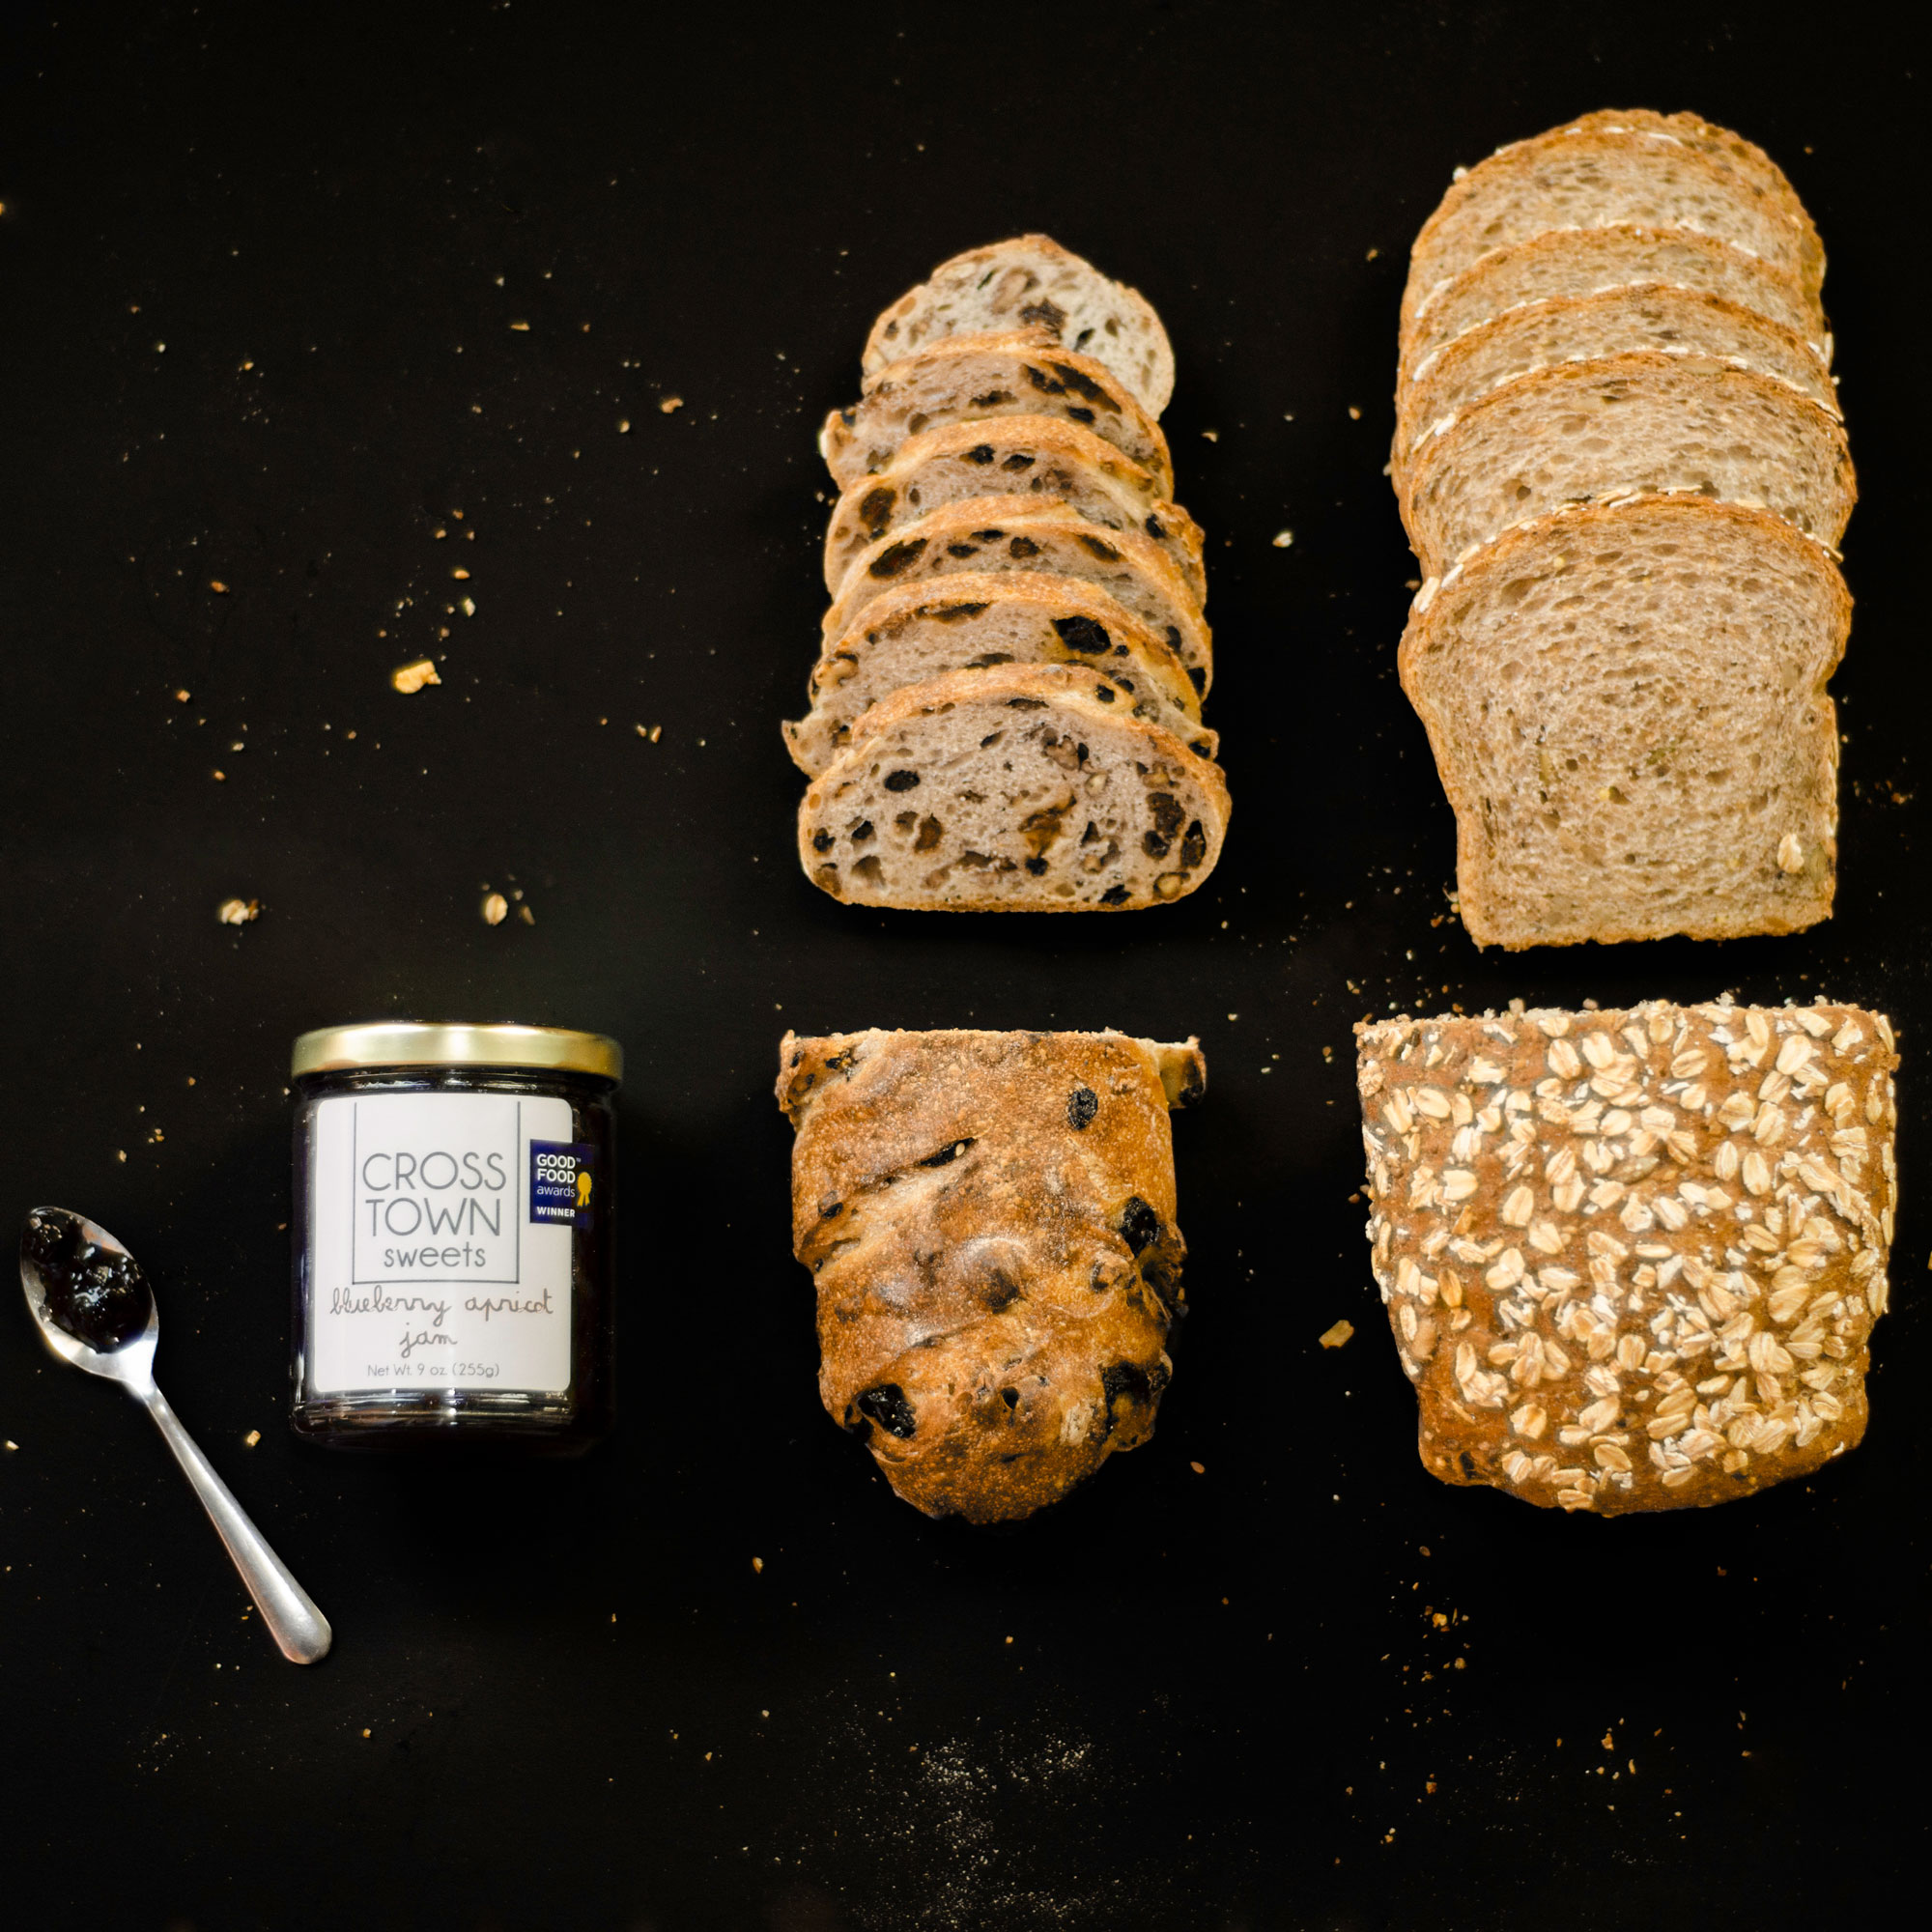 Pepita multigrain bread, pecan currant raisin bread, and Crosstown Sweets' blueberry apricot jam join forces in this tasty gift set for arguably the greatest PB&J potentially ever seen. Hot Bread Kitchen gives back to the food community by creating business incubation programs, where diverse talent is fairly compensated and empowered to grow their start up businesses in the world of food entrepreneurship.                                                  $30, hotbreadkitchen.org